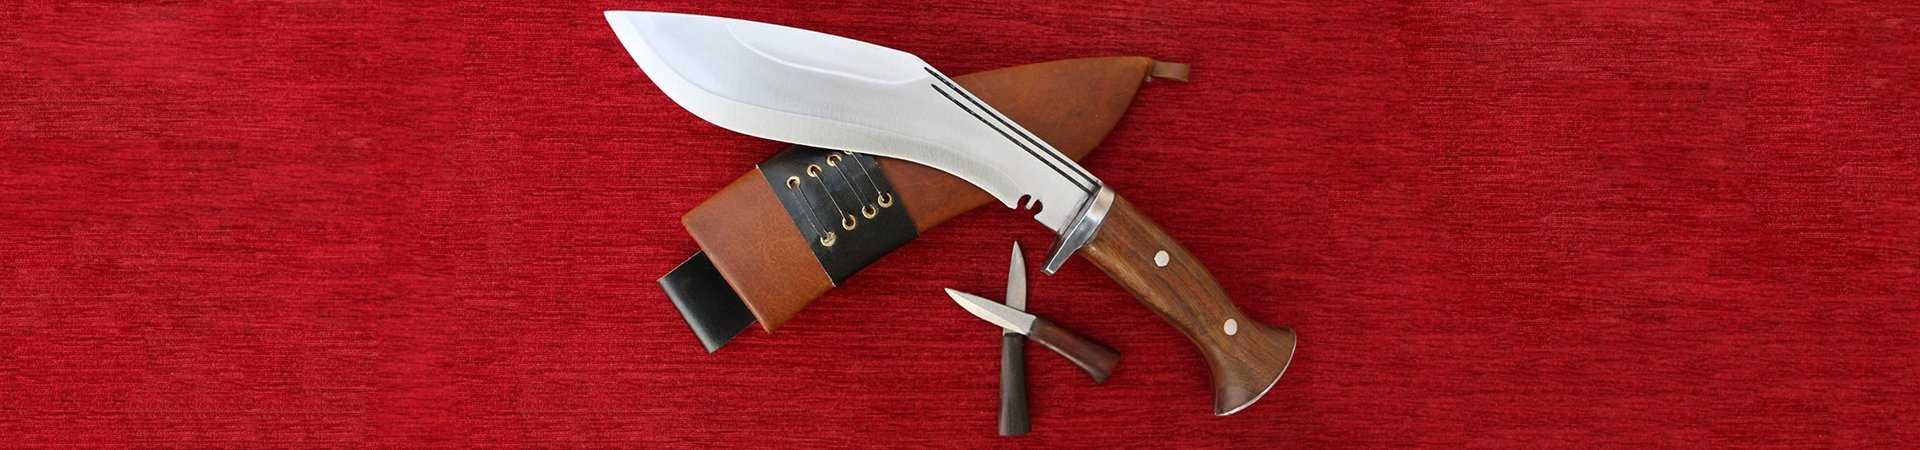 Best Kukri Reviewed in Detail